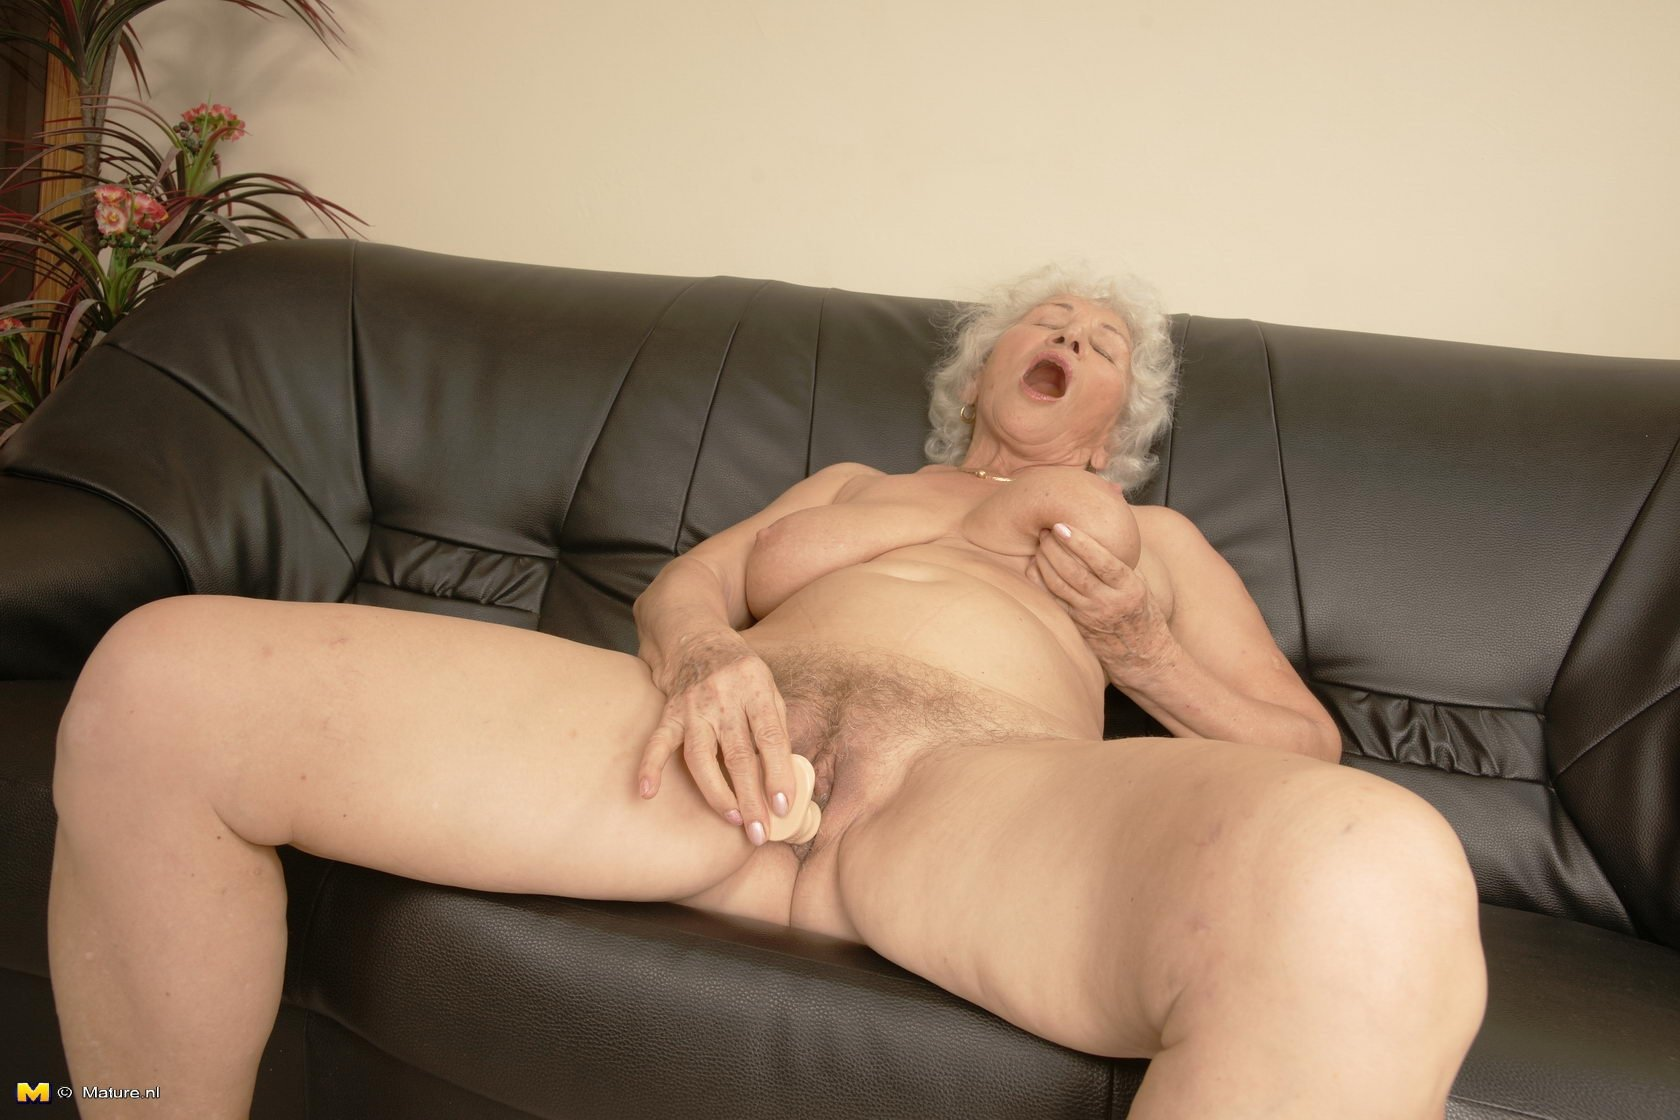 Real gf webcam porn mature asian granny sex